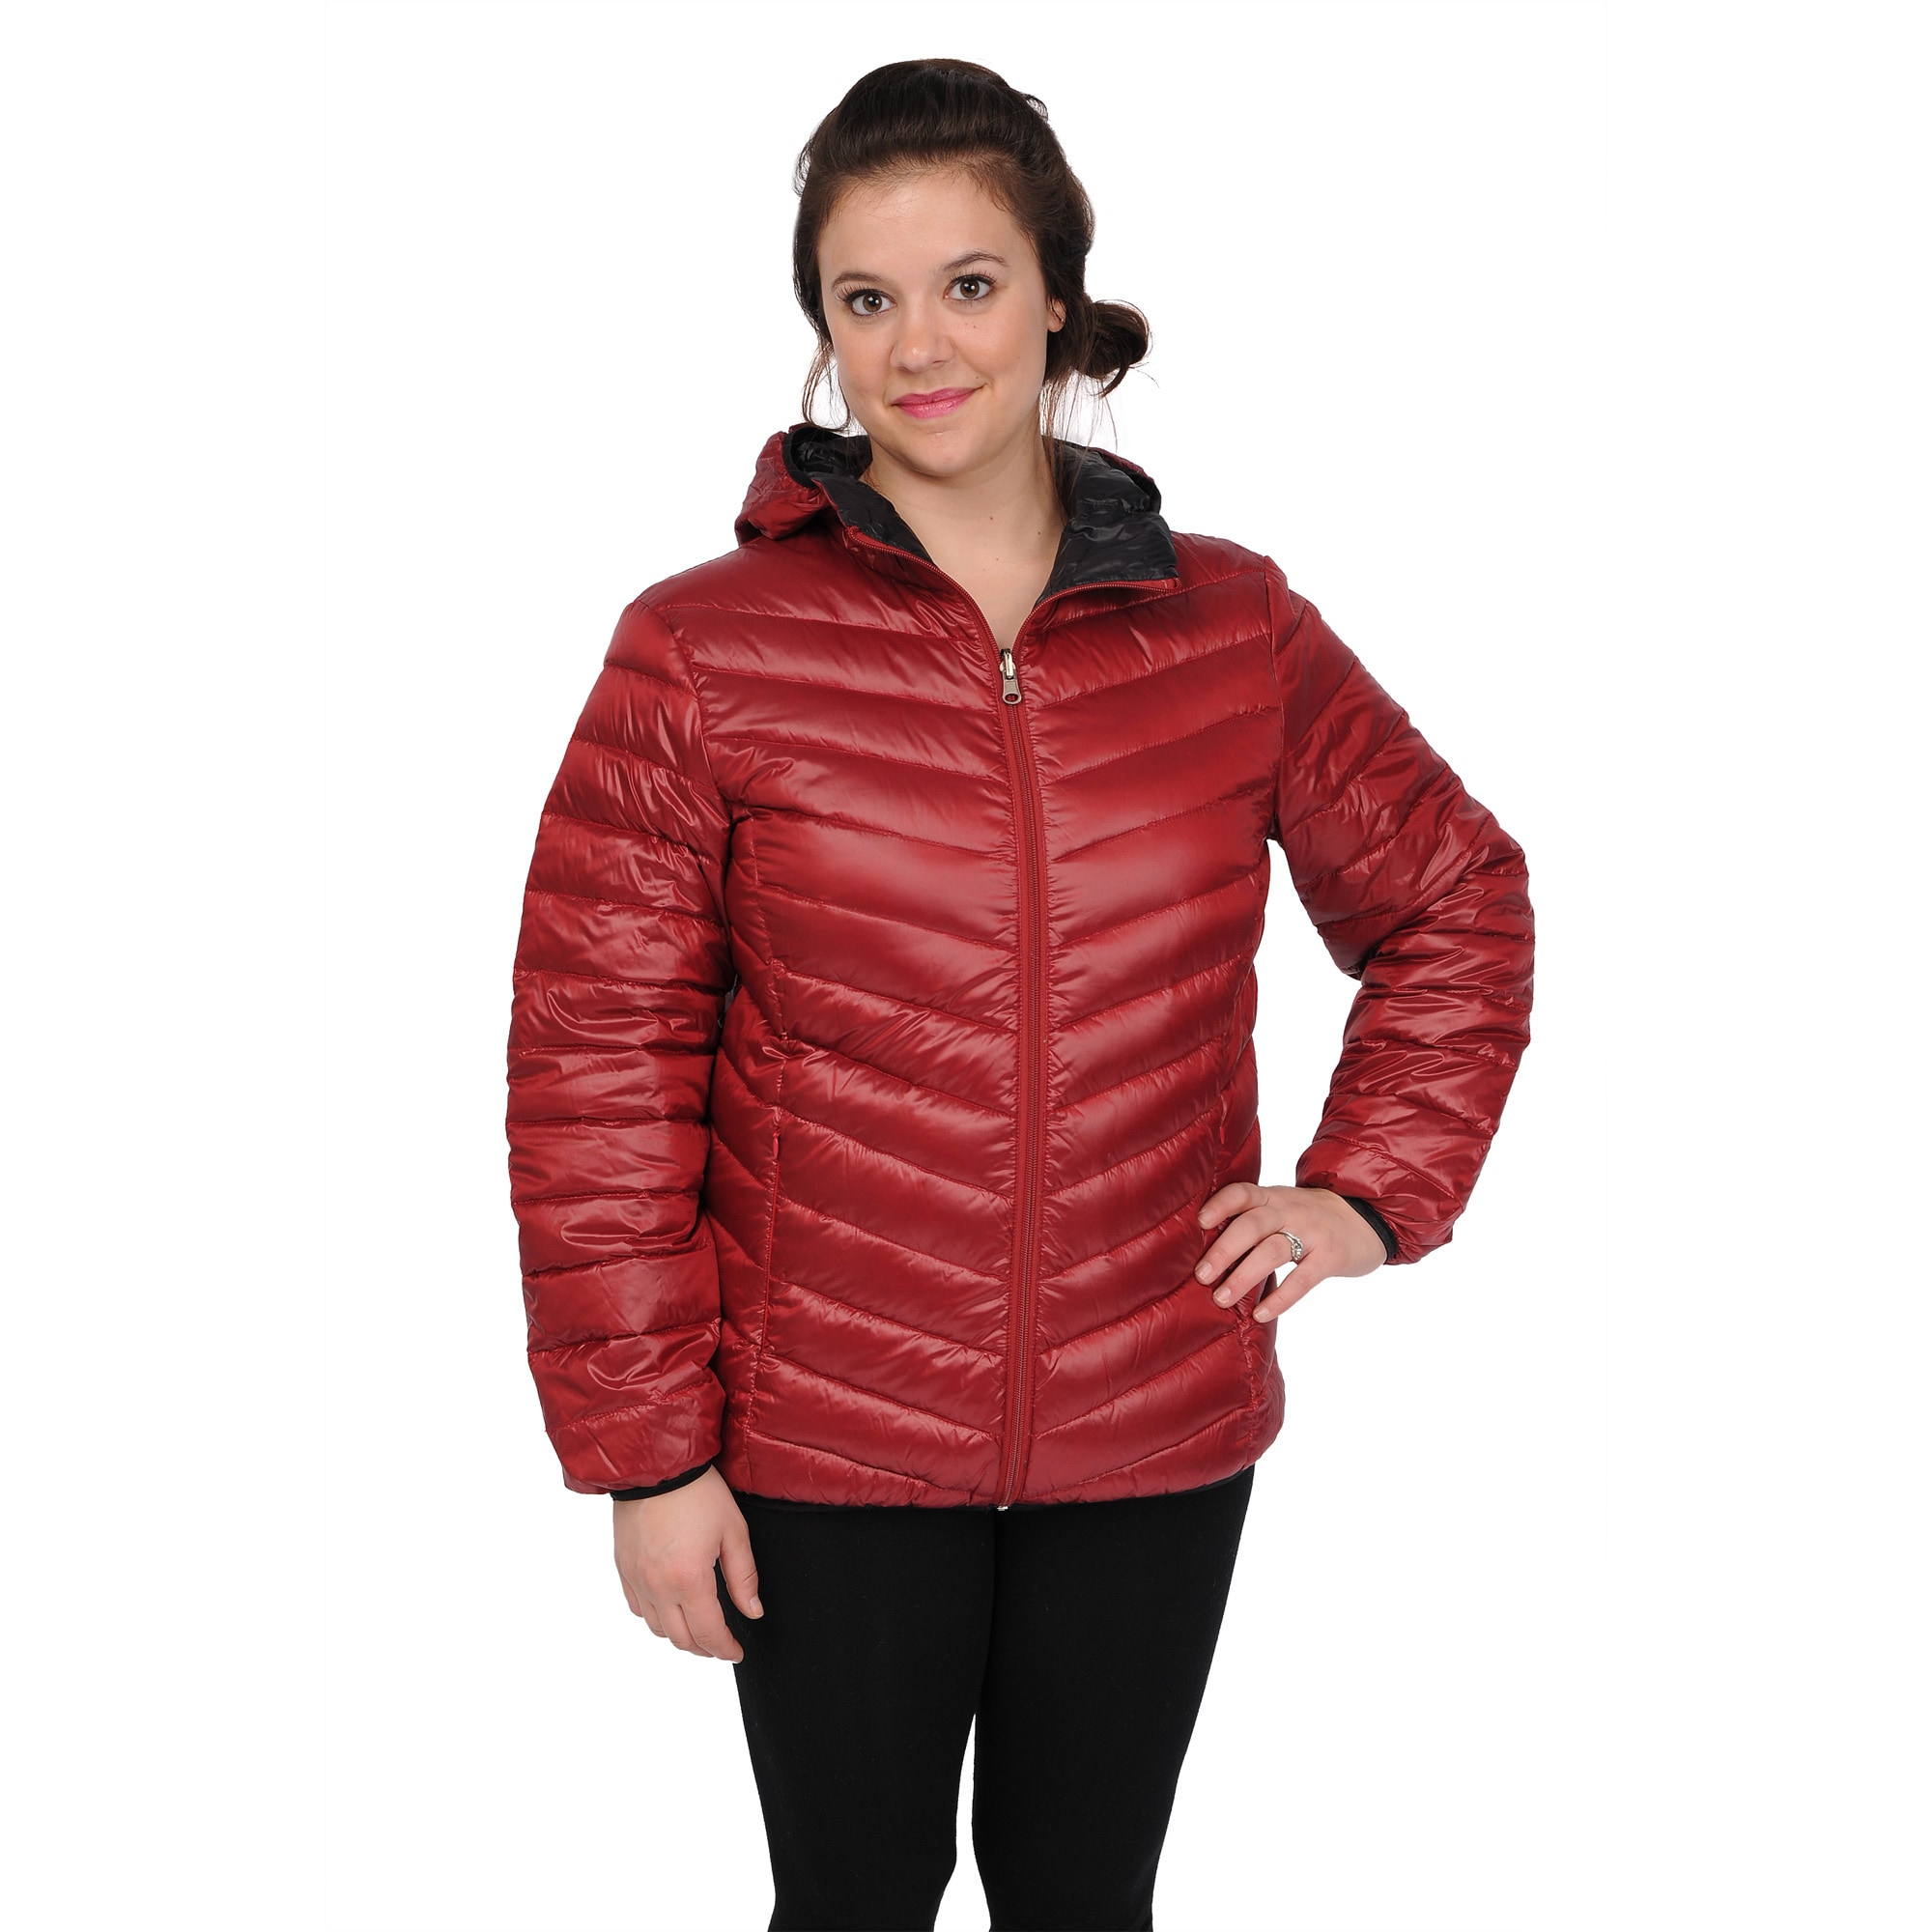 EXcelled Women's Plus Size Packable Puffer Jacket with Attached Hood - Free  Shipping Today - Overstock.com - 16627075